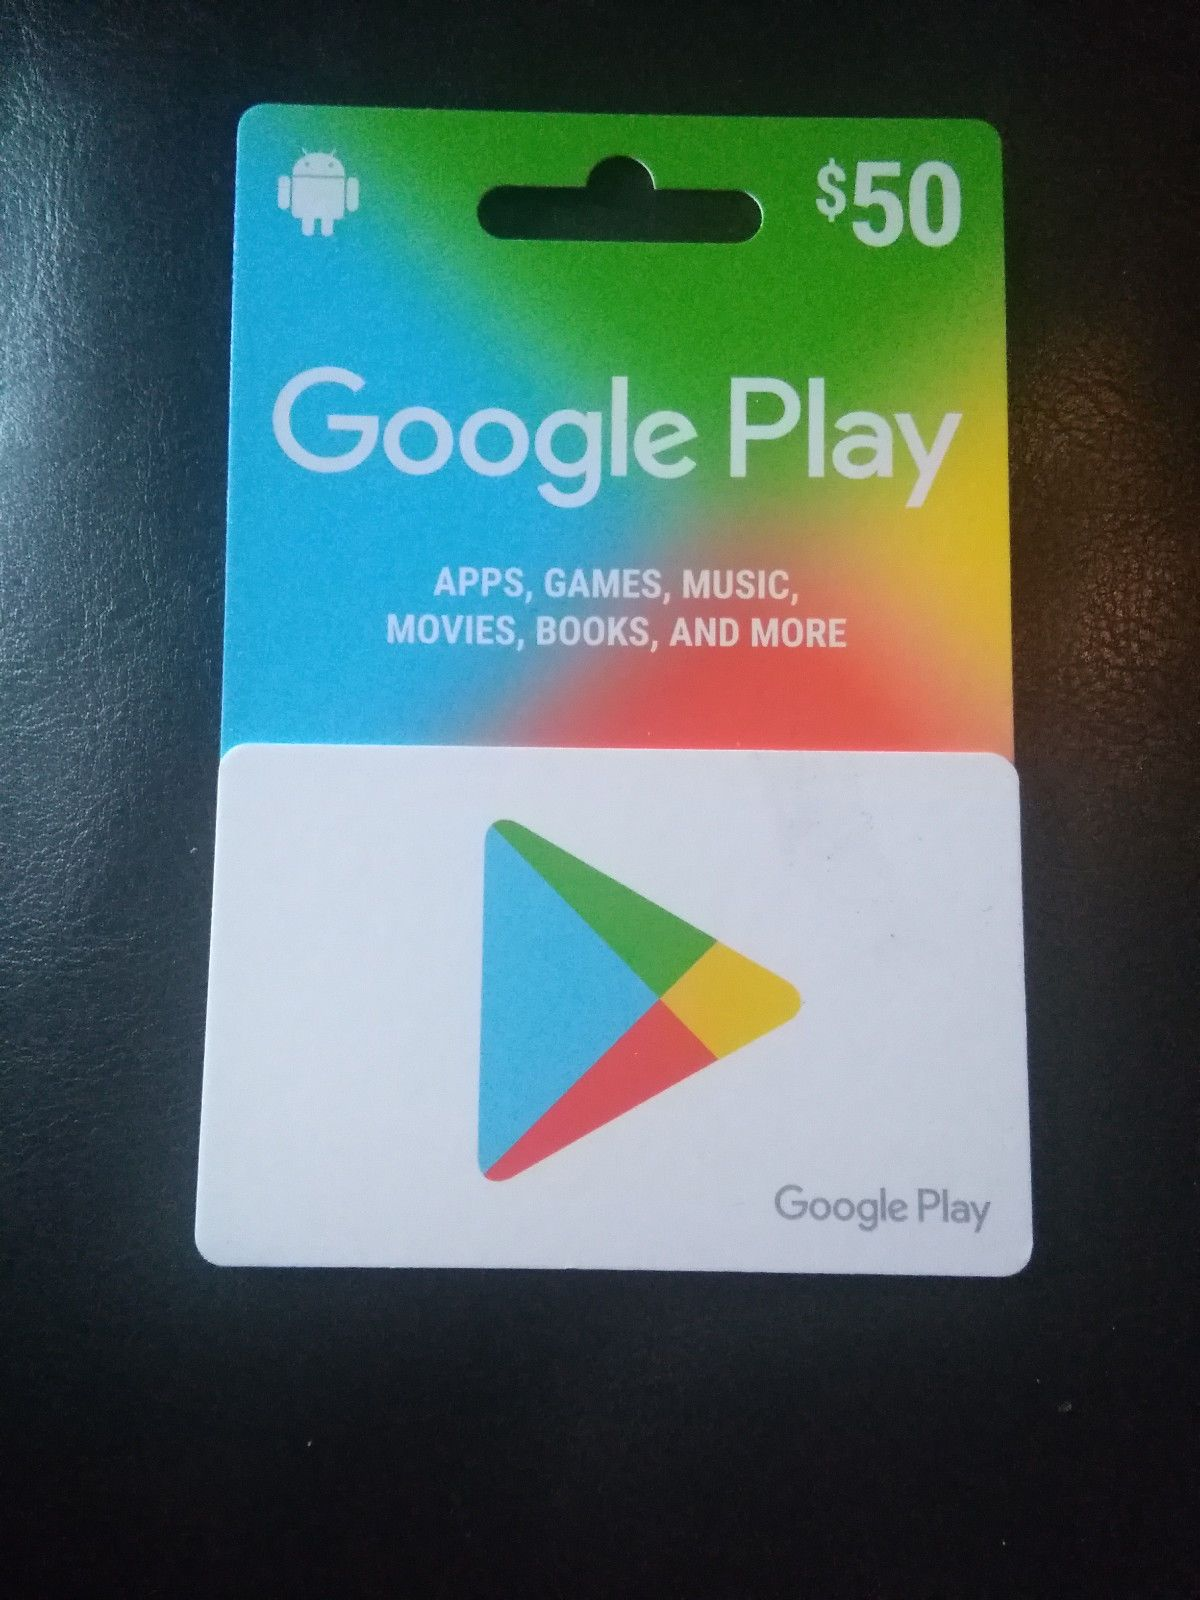 50 Google Play Gift Card With Images Google Play Gift Card